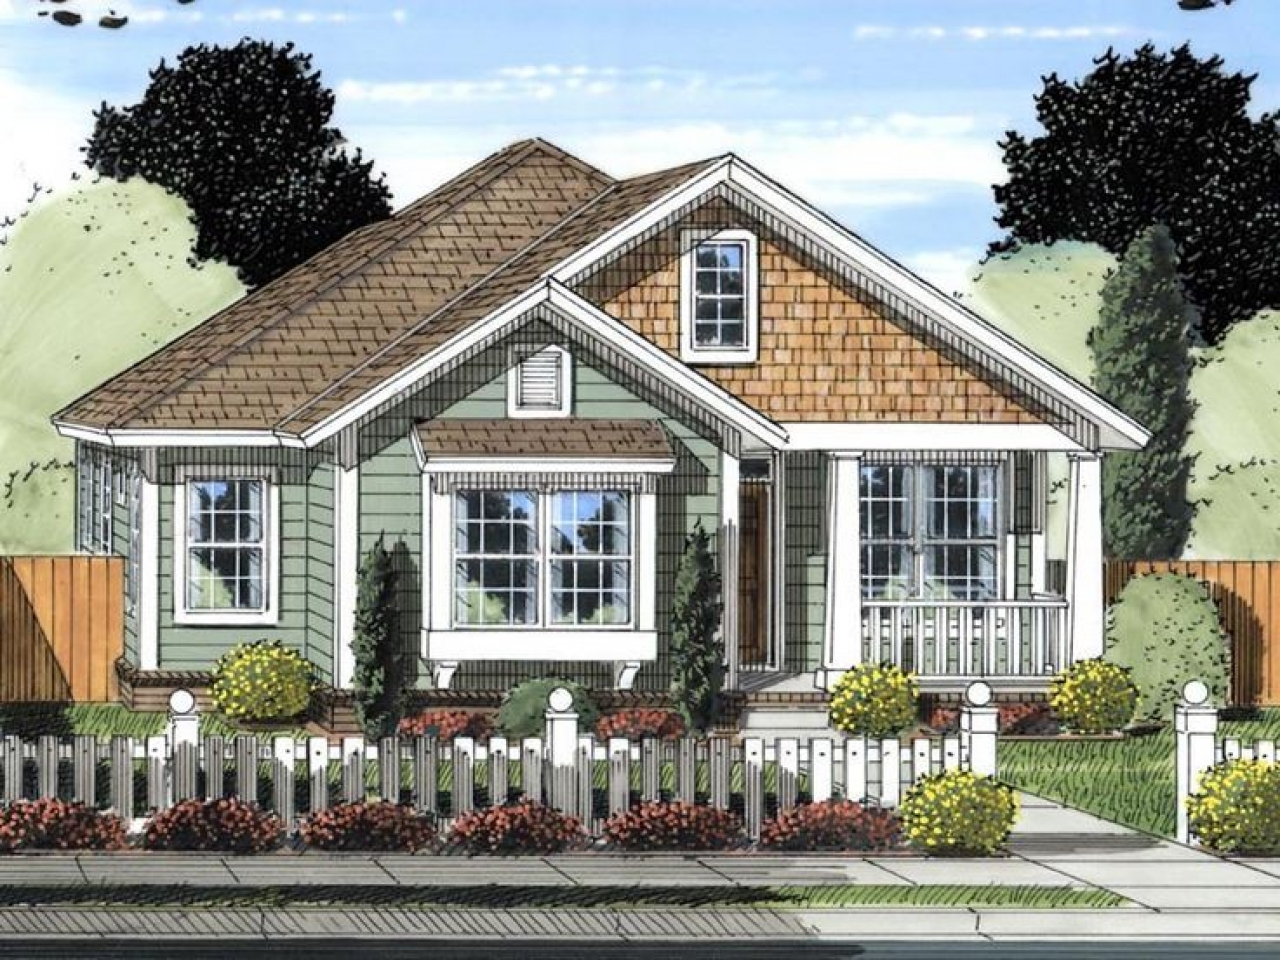 Vintage craftsman house plans craftsman cottage house for Craftsman small house plans